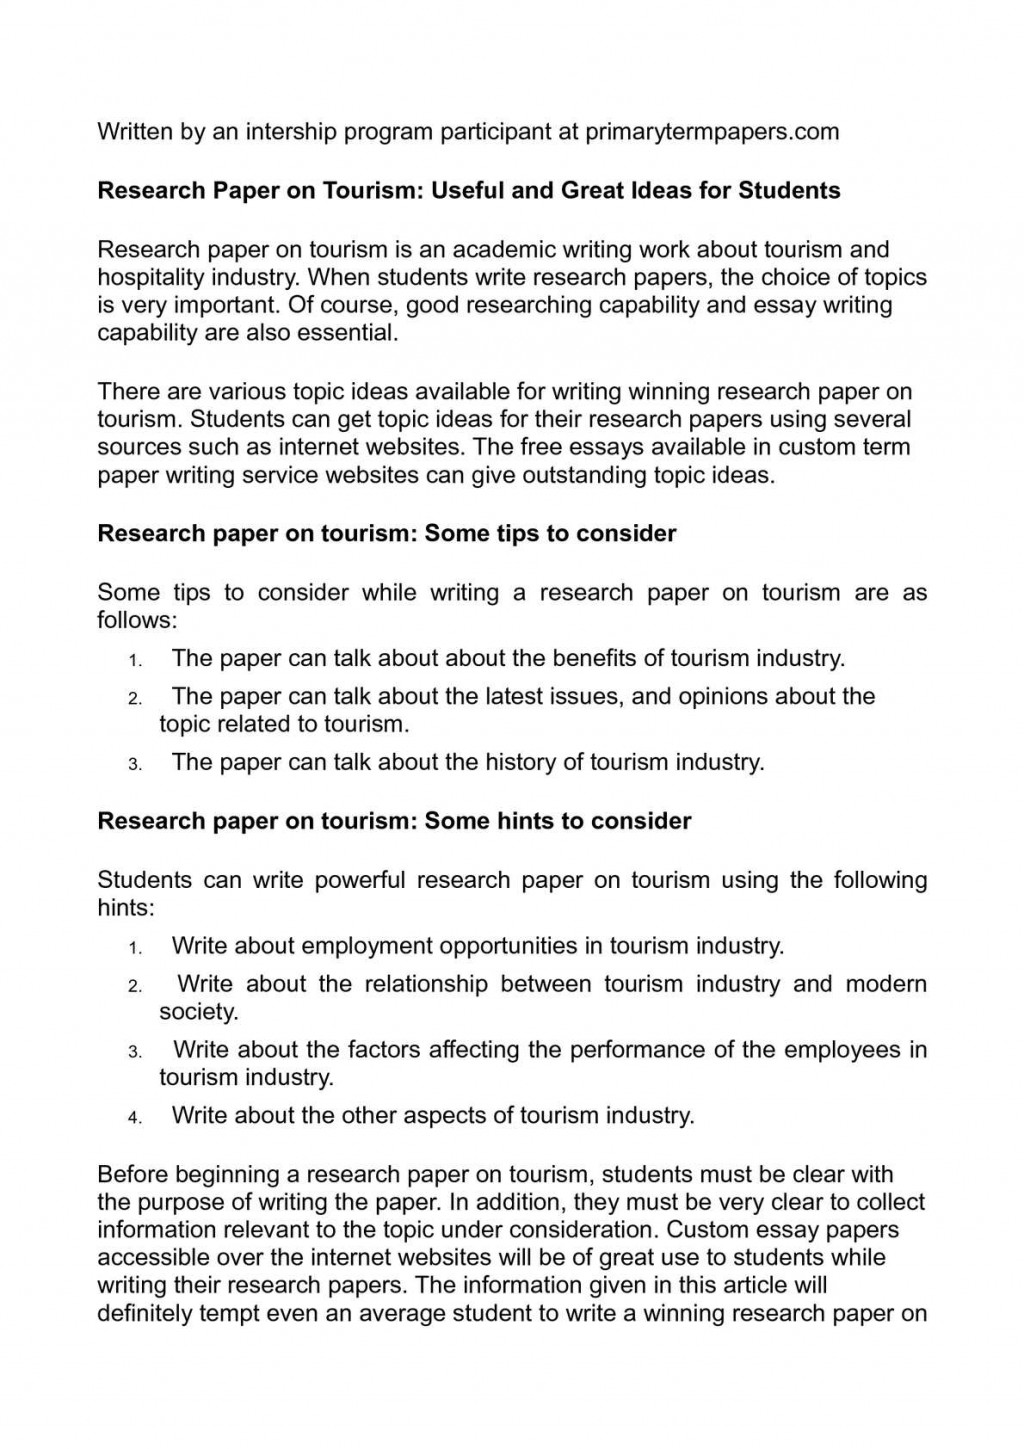 002 Research Paper Papers Ideas Surprising High School Topics 2017 About Education Topics- Sports Large